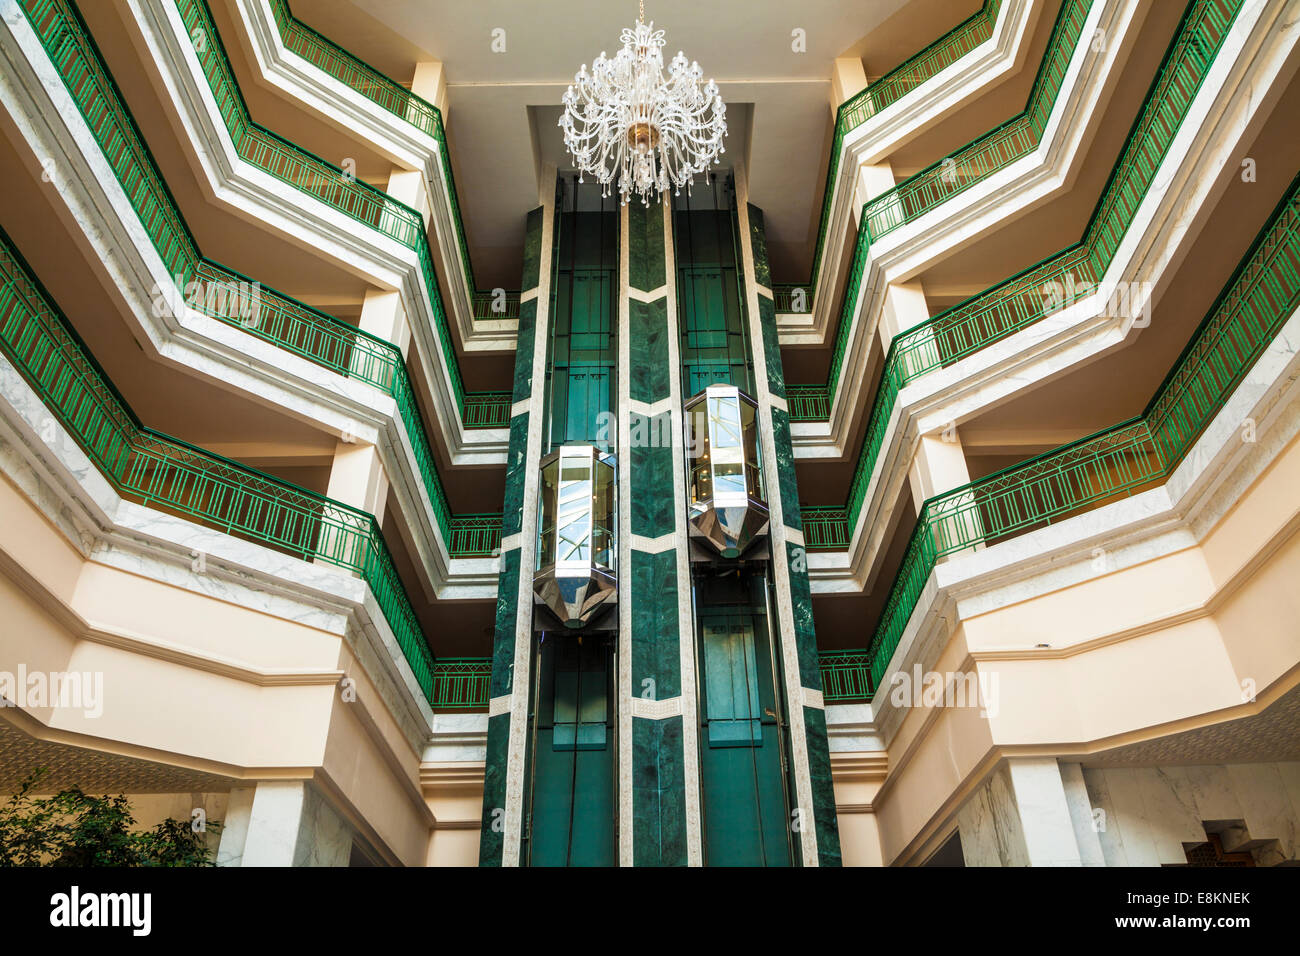 An abstract image of the lift and floors in a five star resort hotel near Port el Kantoui in Tunsia. - Stock Image